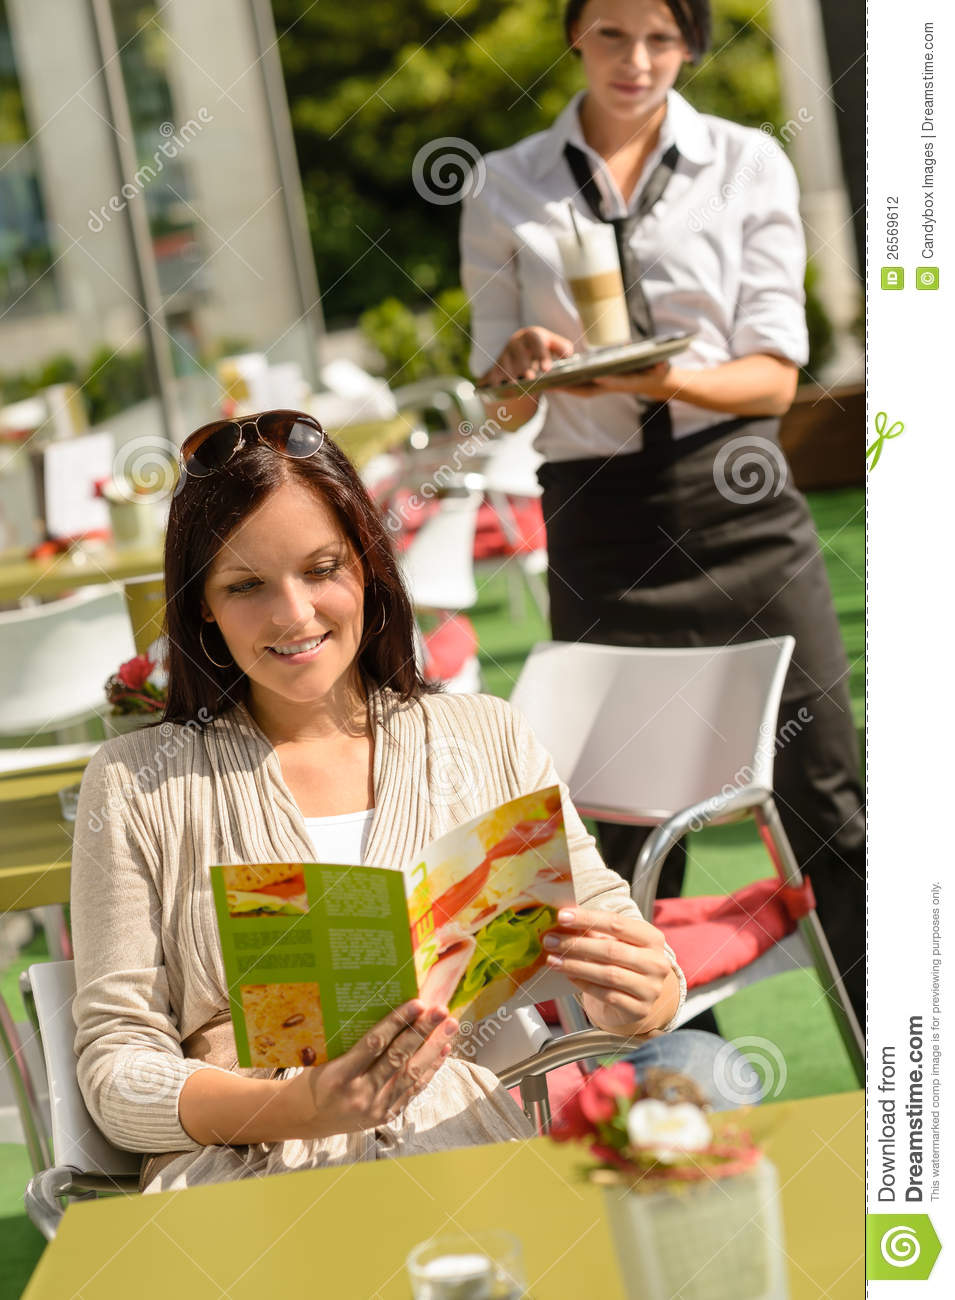 Woman checking menu waitress bringing order coffee